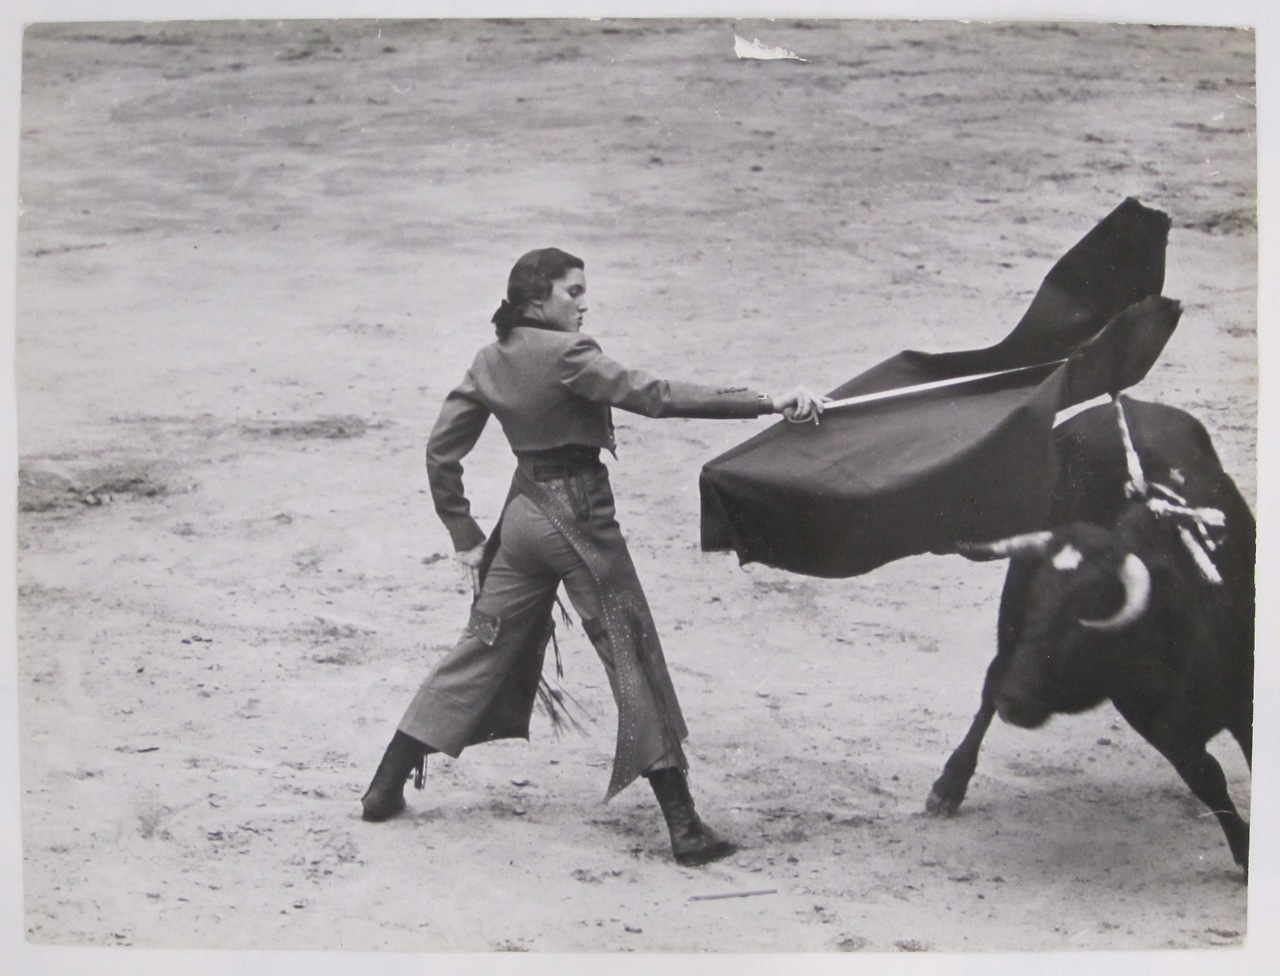 """Known as """"The Golden Goddess"""", Cintrónbecame the first female bullfighter ( torera ) to compete when she did so in 1936, at age fourteen. Widely seen as the most famous female bullfighter in the history of the sport, Cintron gored over 750 bulls during her extensive career. At a 1940 event in Mexico,Cintrónwas injured by a bull and brought to the infirmary. She refused to be taken off-site and later returned to the ring to kill the bull before collapsing. Her popularity in the sport was so great, that when she was arrested in Spain for entering the ring and bullfighting on foot (only fighting from horseback was allowed at the time), the audience sprang to her defense. As riots threatened to break out in the streets, the regional governor was forced to pardonCintrón.Orson Welles, who wrote the introduction to her autobiography later said: """"  Her record stands as a rebuke to every man of us who has ever maintained that a woman must lose something of her femininity if she seeks to compete with men  ."""""""